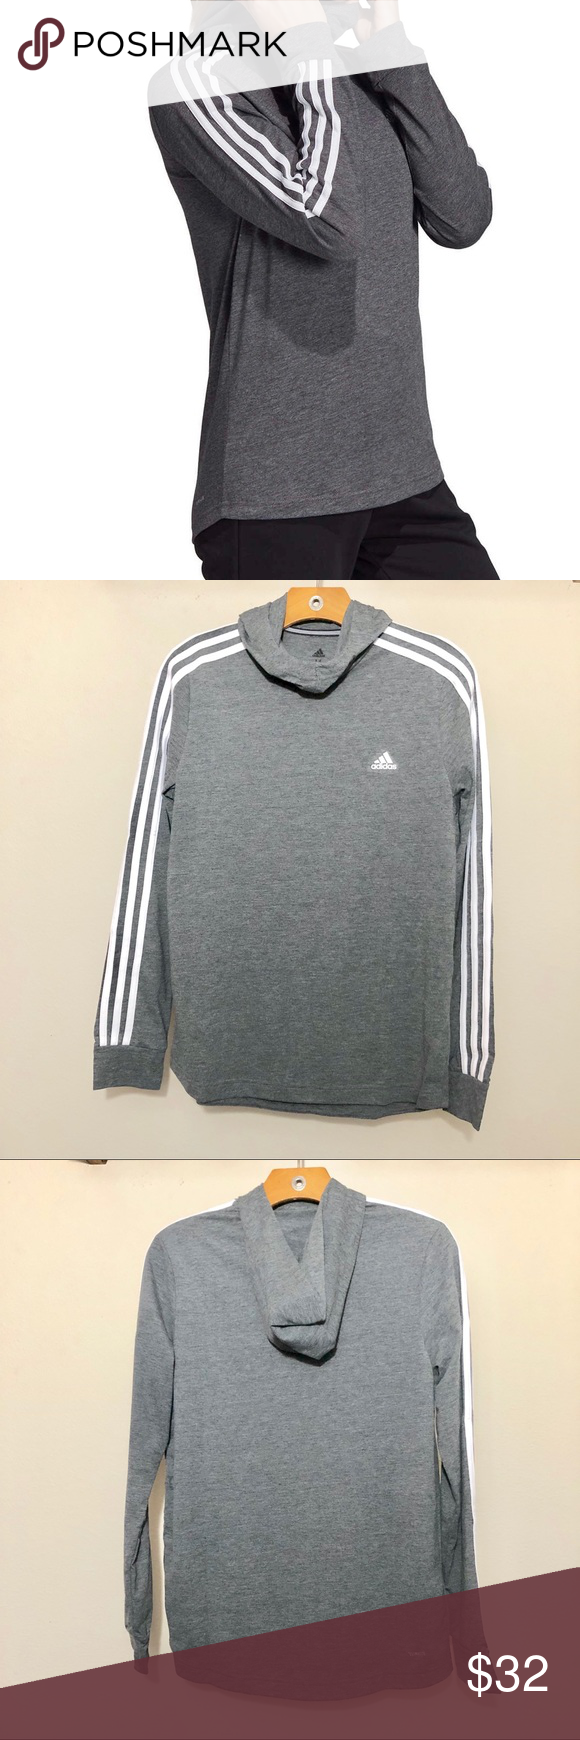 Adidas Hoodie Grey White Pullover Cowl Neck Med Authentic Adidas Ladies Long Sleeve Classic Three Stripe Li Adidas Hoodie Women Adidas Hoodie Hoodies Womens [ 1740 x 580 Pixel ]